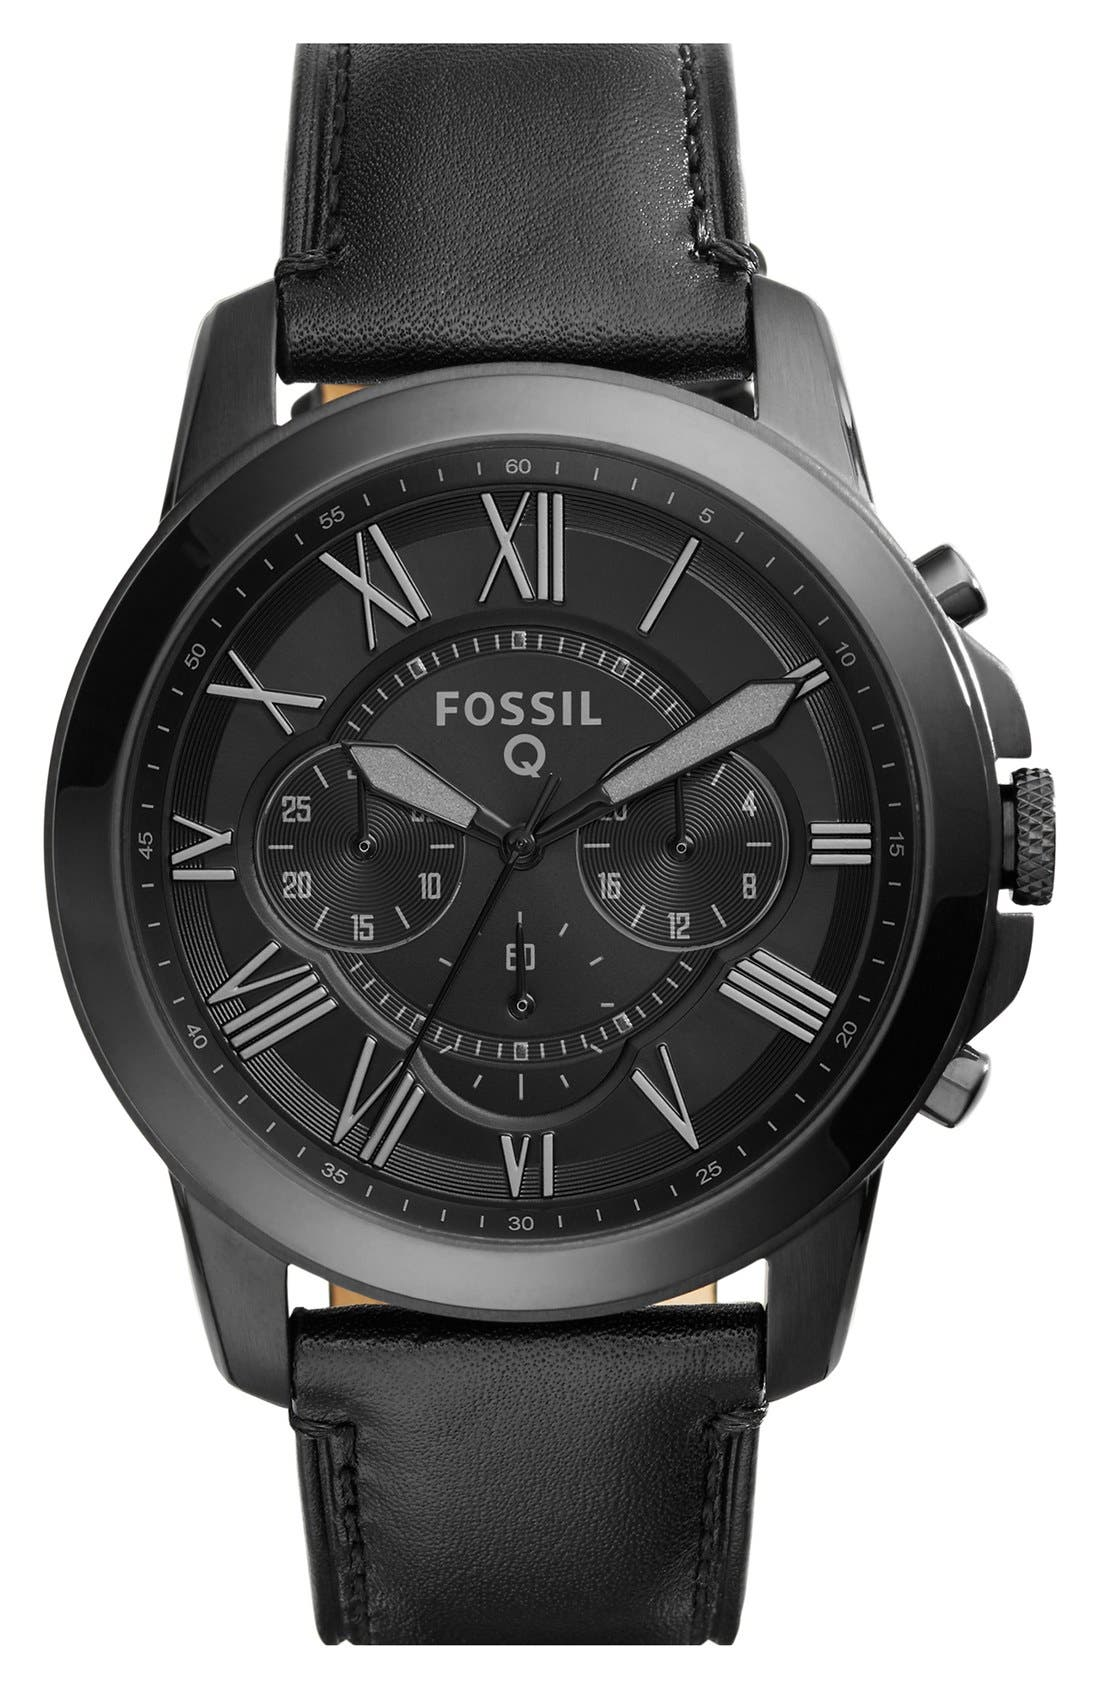 Fossil 'Fossil Q - Grant' Round Chronograph Leather Strap Smart Watch, 44mm,                             Main thumbnail 1, color,                             001